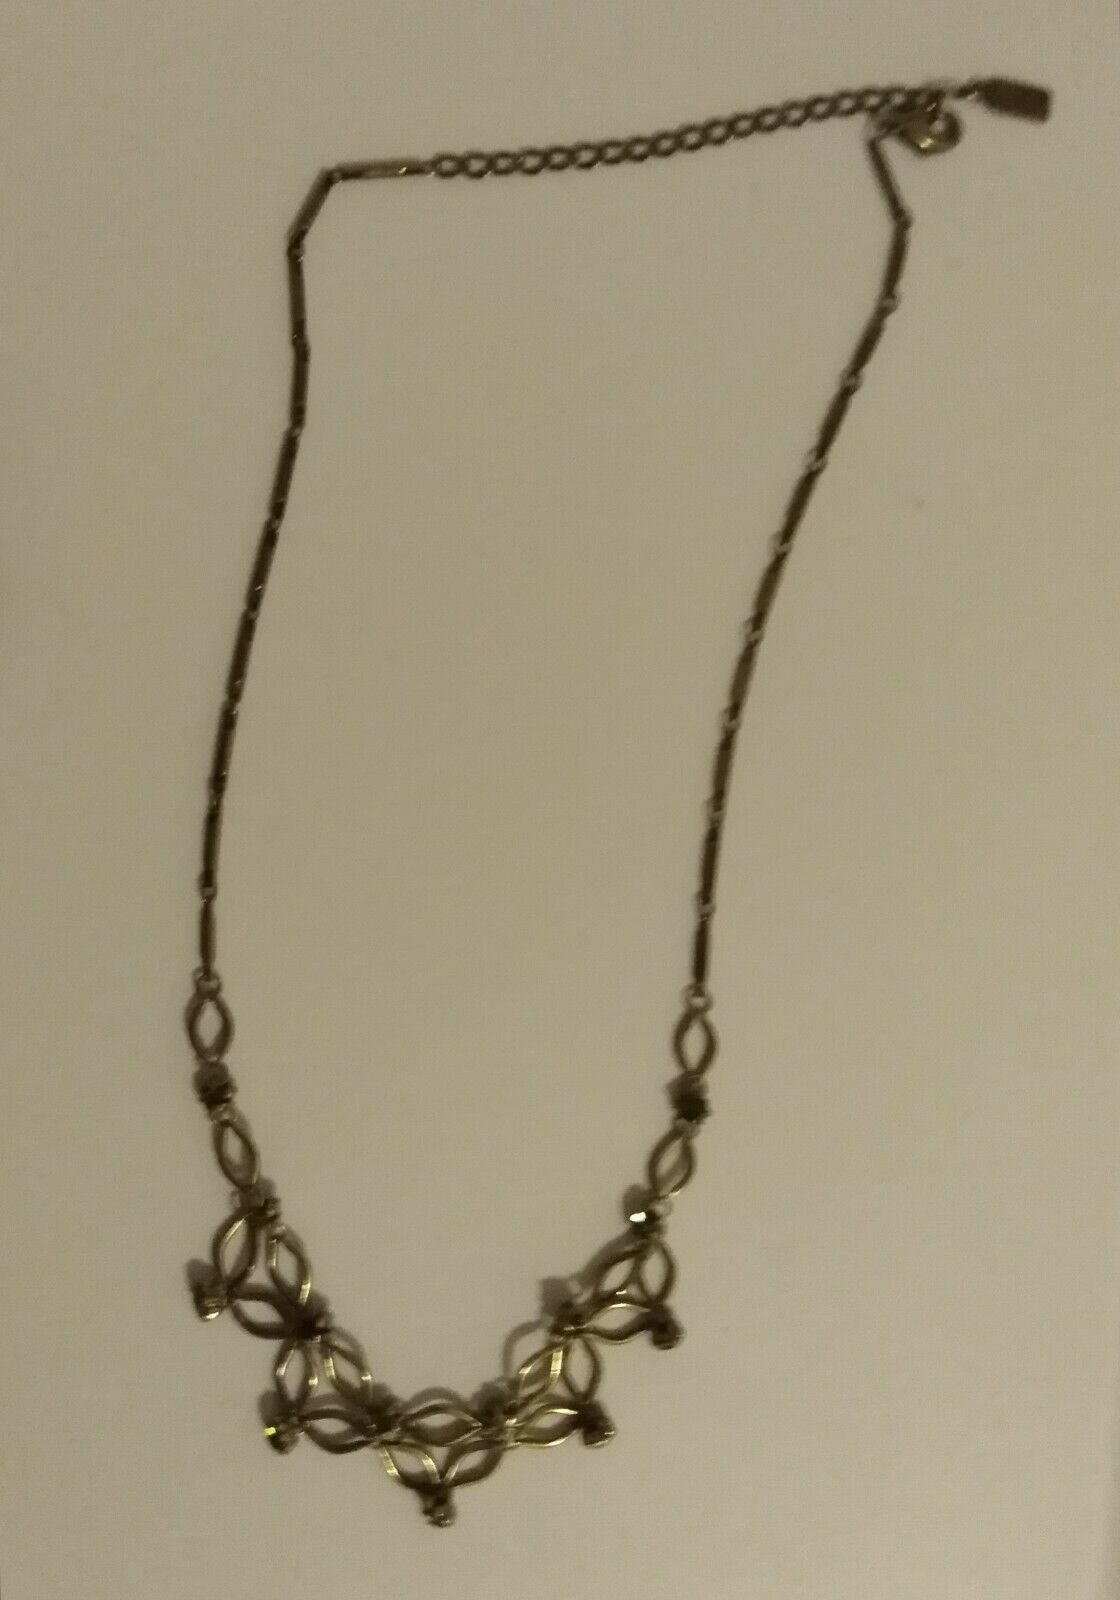 1928 BRAND GOLD TONE CHAIN WITH CLEAR STONES